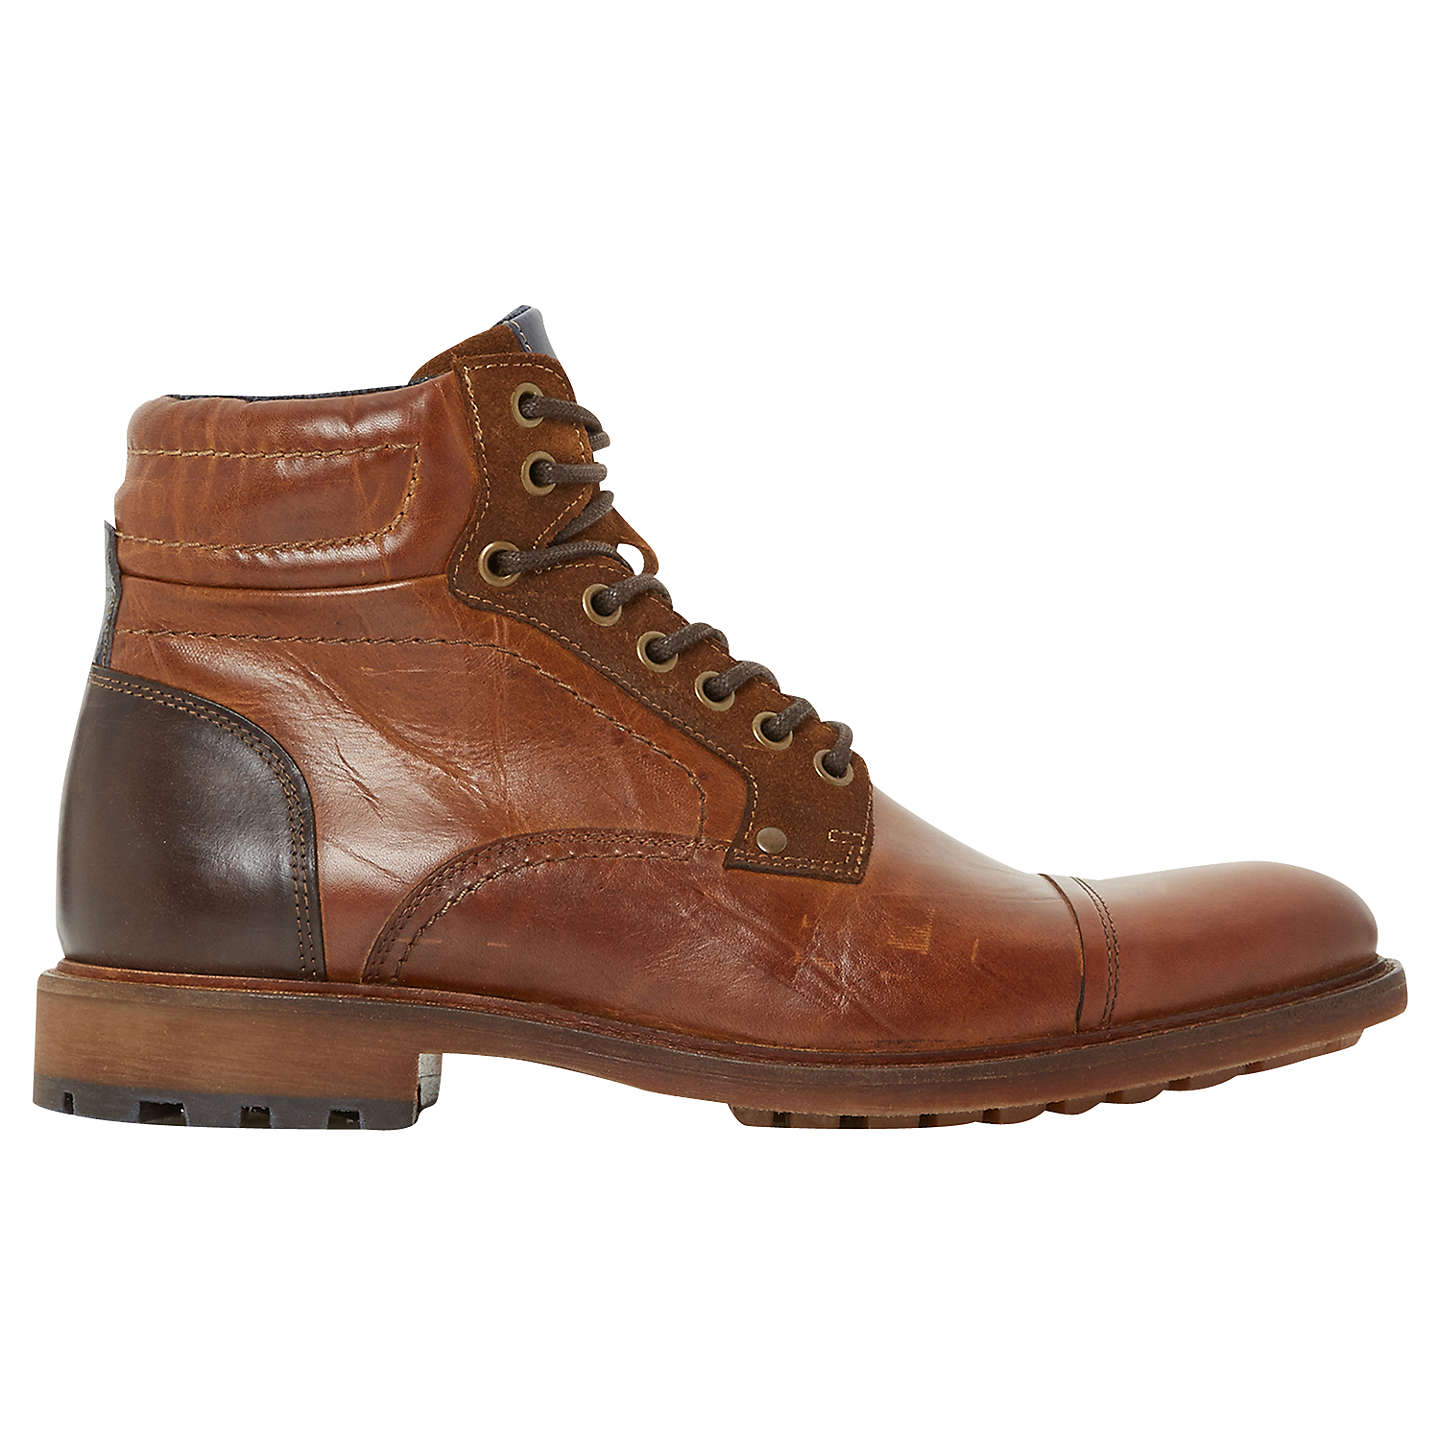 Sast For Sale Low Cost Mens Clef Boots Bertie Cheap Sale Outlet Locations Cheap Discount Collections Cheap Online RrnjtreGl